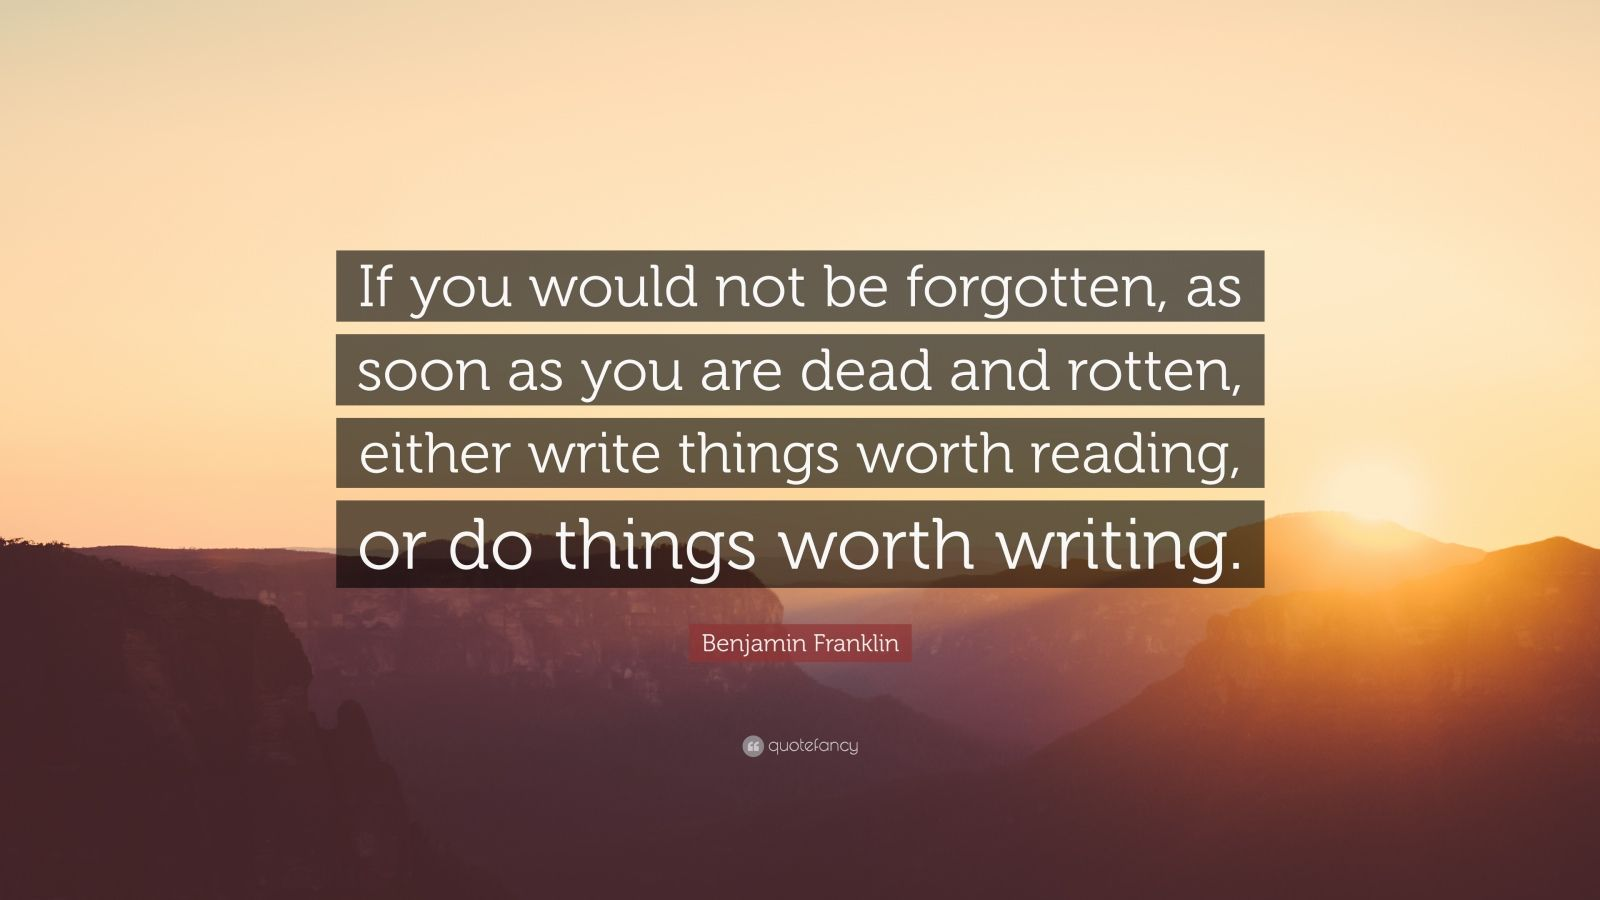 """Benjamin Franklin Quote: """"If you would not be forgotten, as soon as you are dead and rotten, either write things worth reading, or do things worth writing."""""""